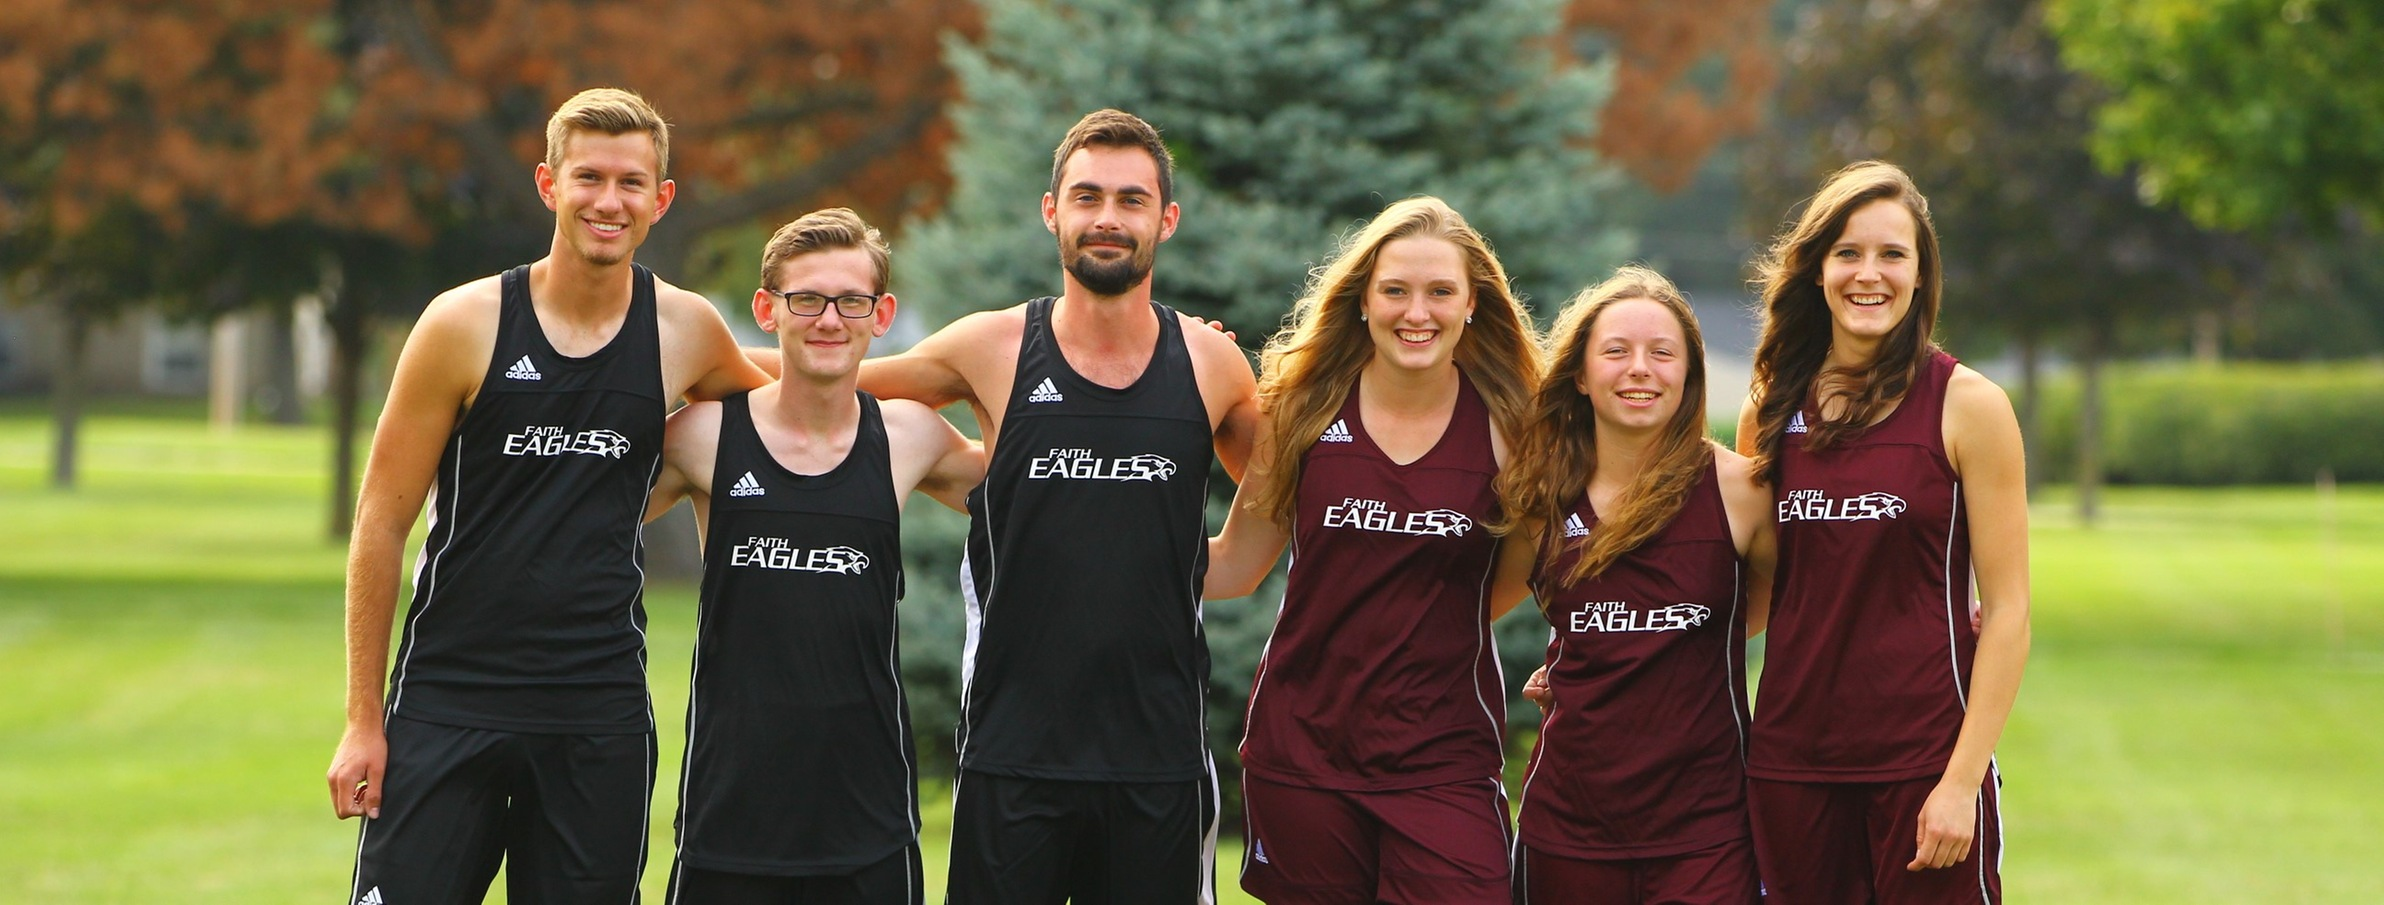 2017 Cross Country Season Review